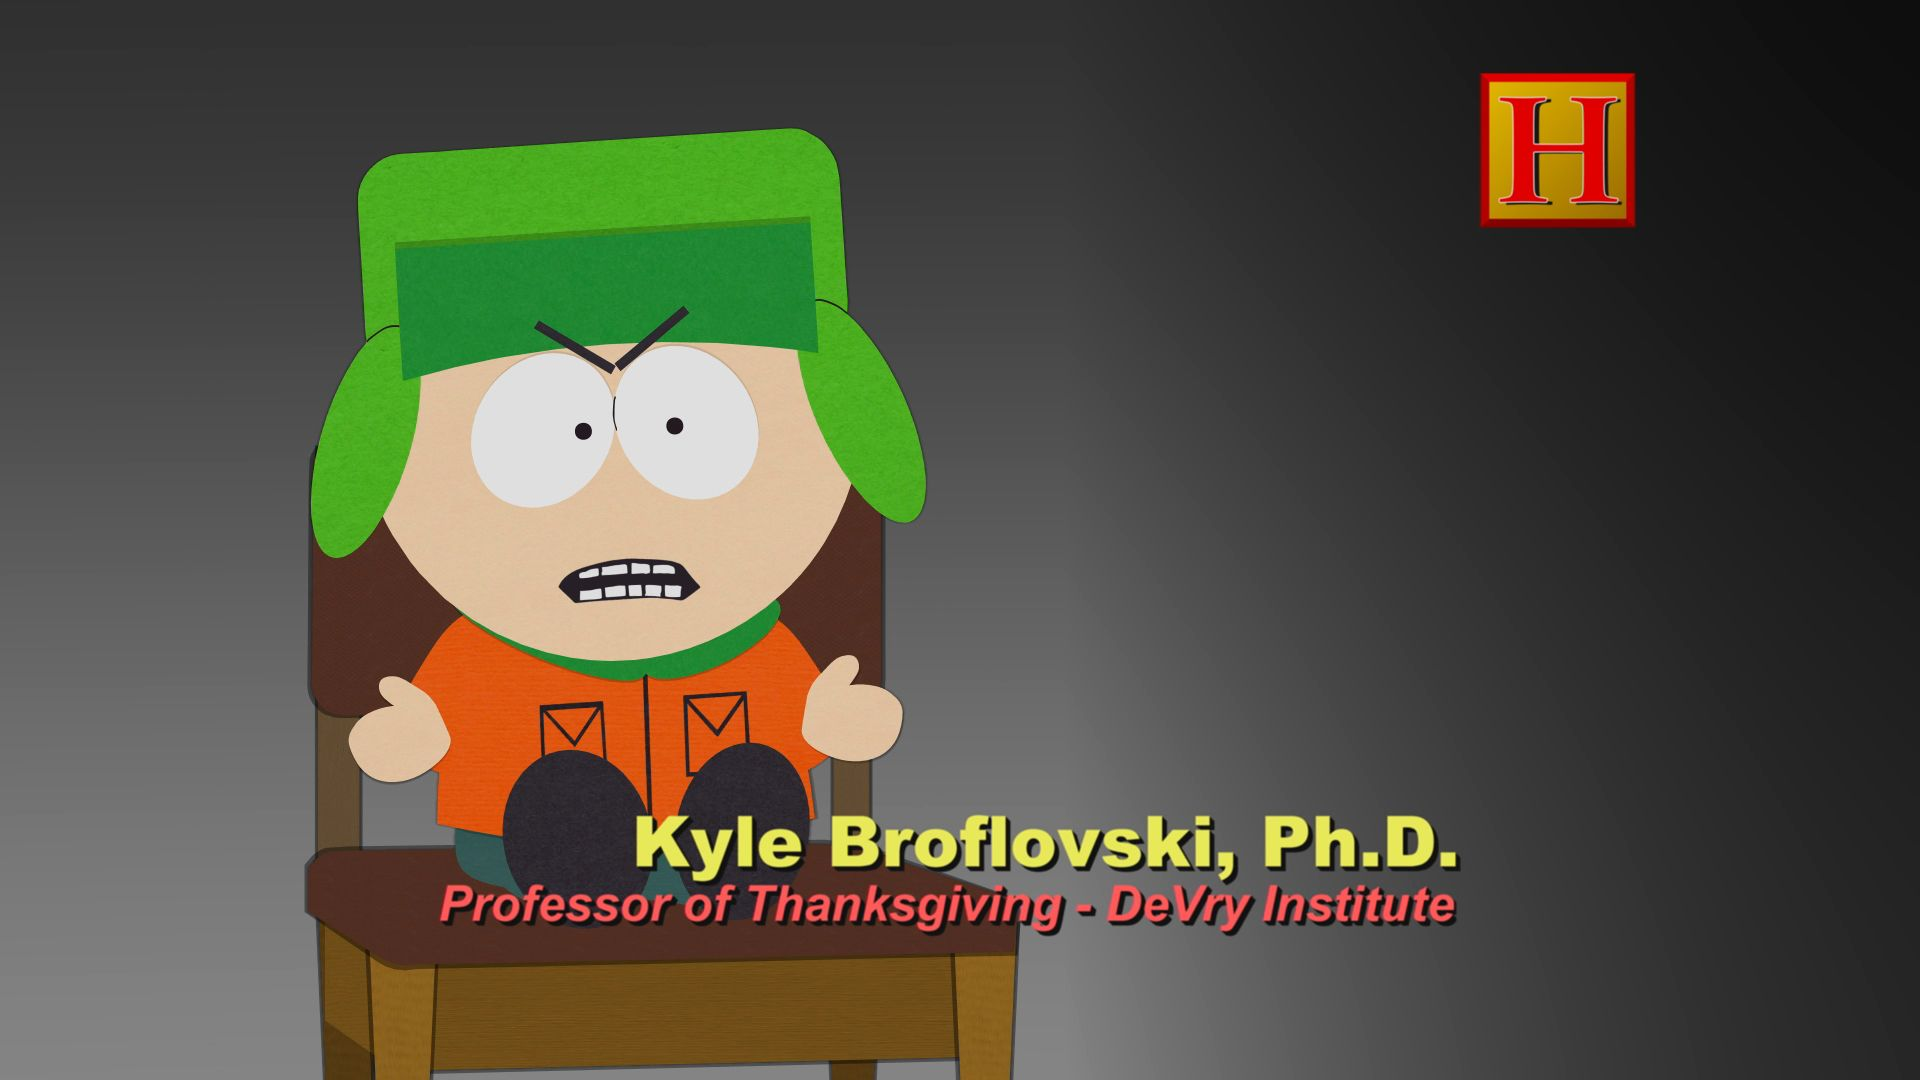 Professor of Thanksgiving, Ph.D. - Seizoen 15 Aflevering 13 - South Park